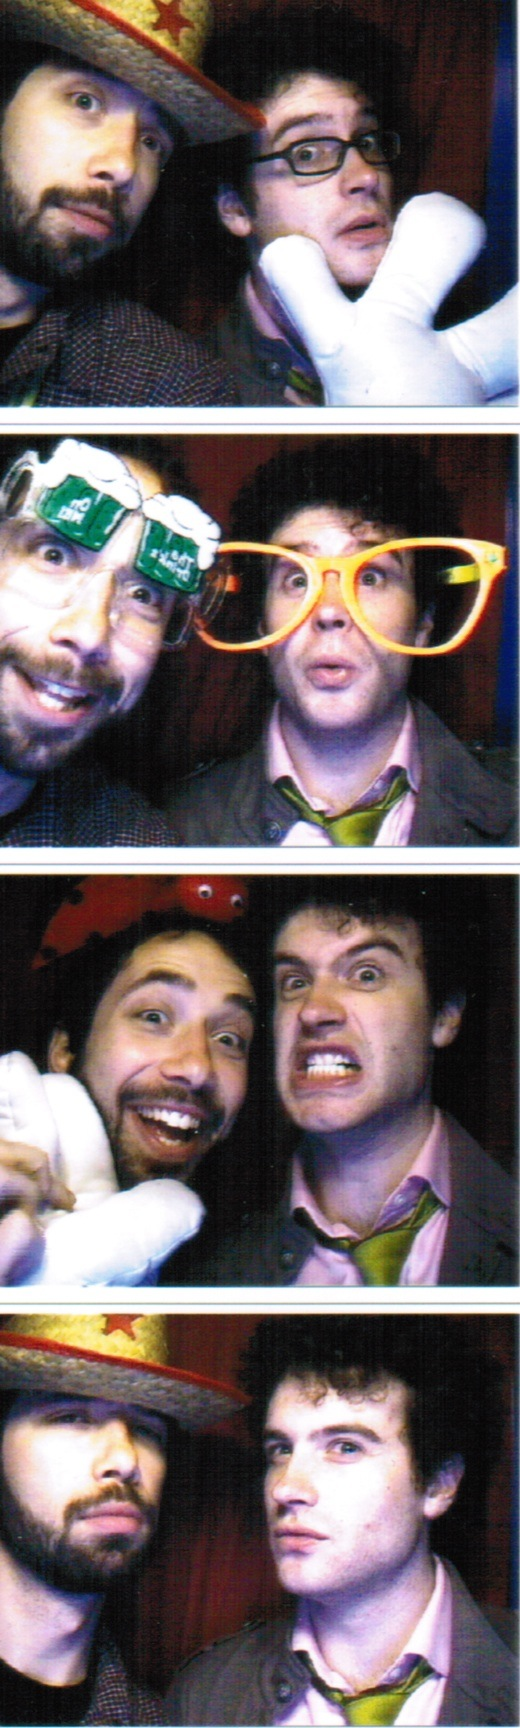 Andrew and Ben at SXSW 2009